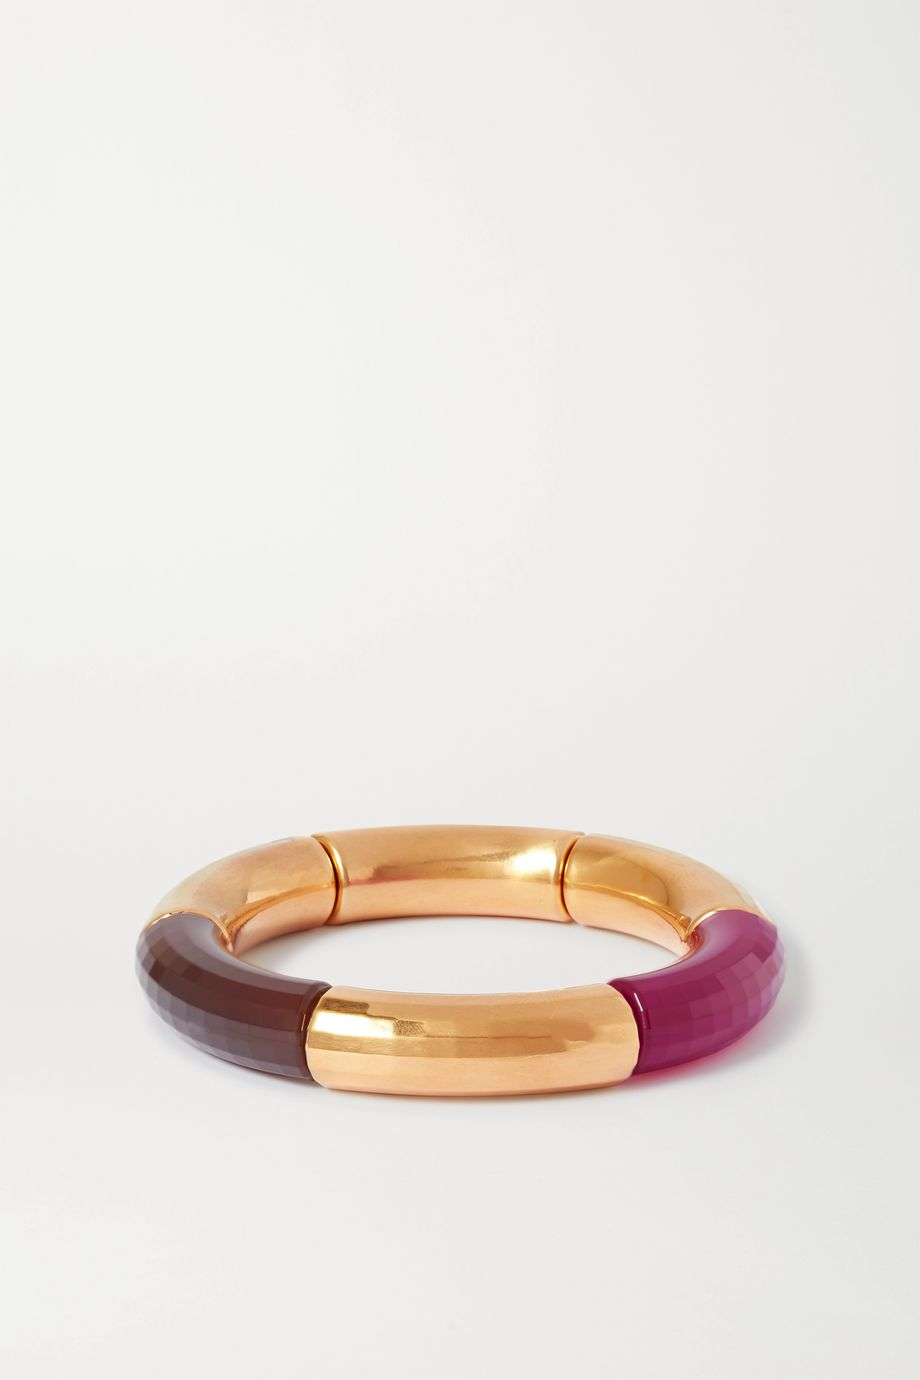 Kyoto Tango Female Emancipation gold-plated and resin bangle